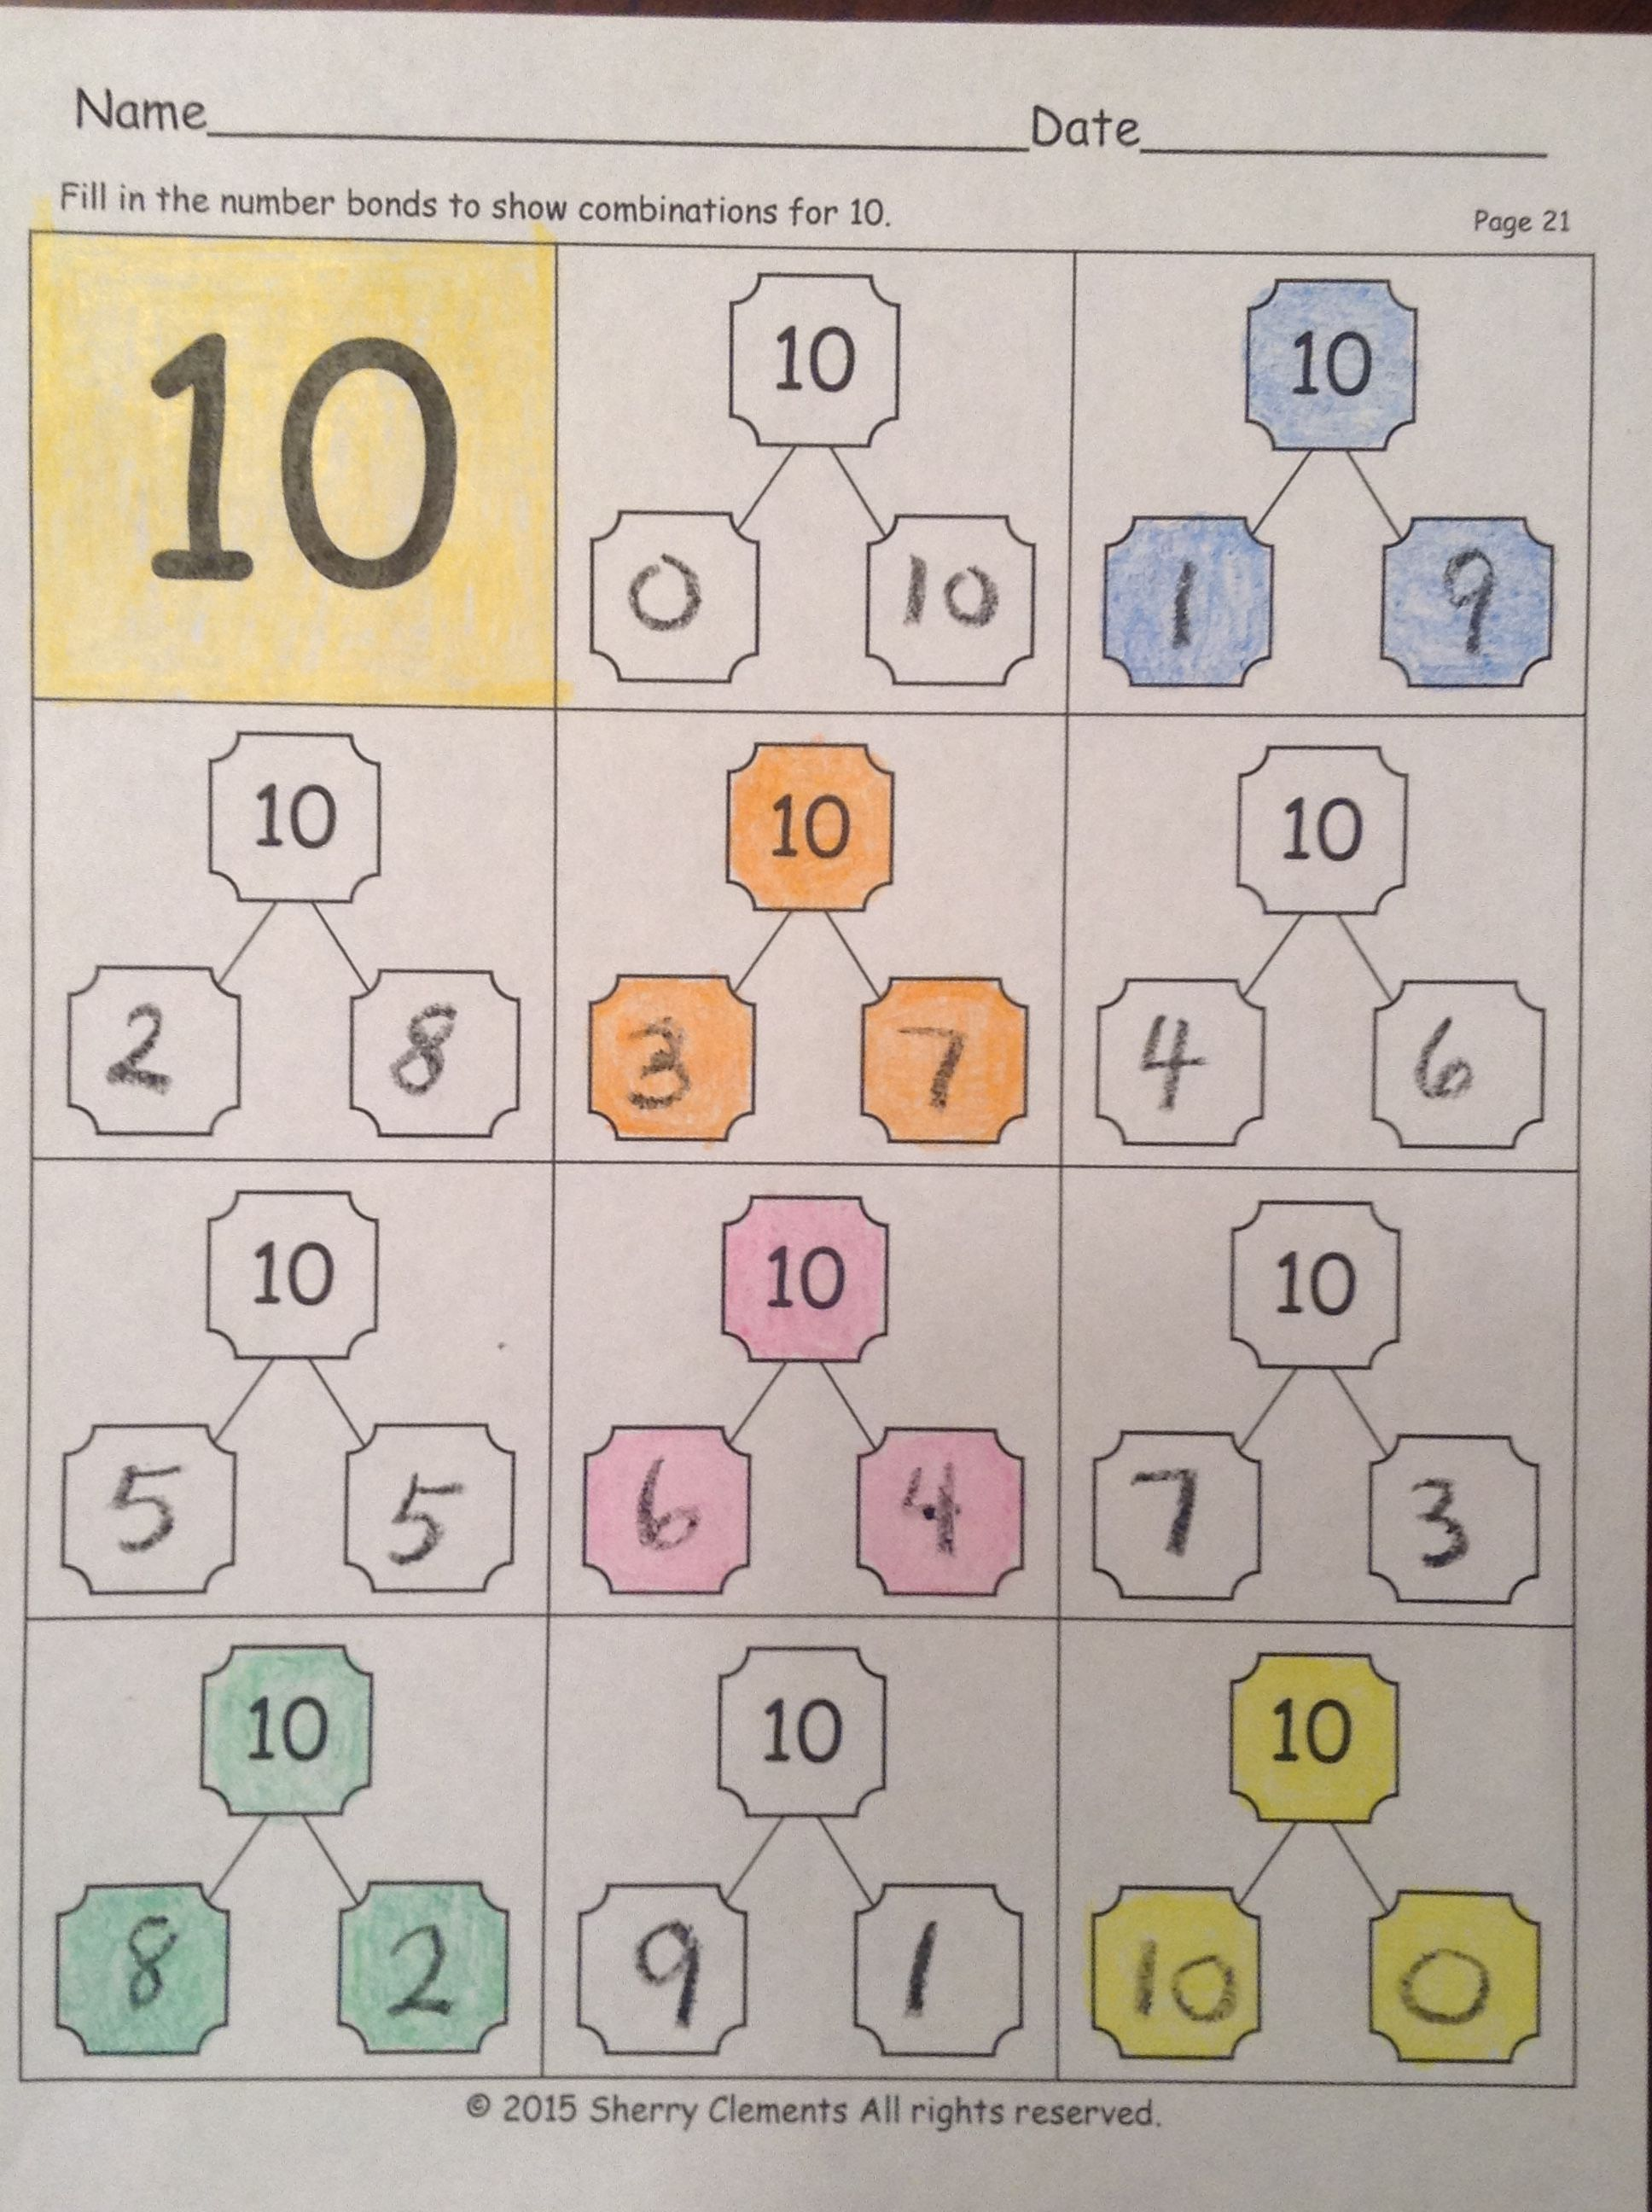 176 best Guided math images on Pinterest | Dallas, Guided math ...